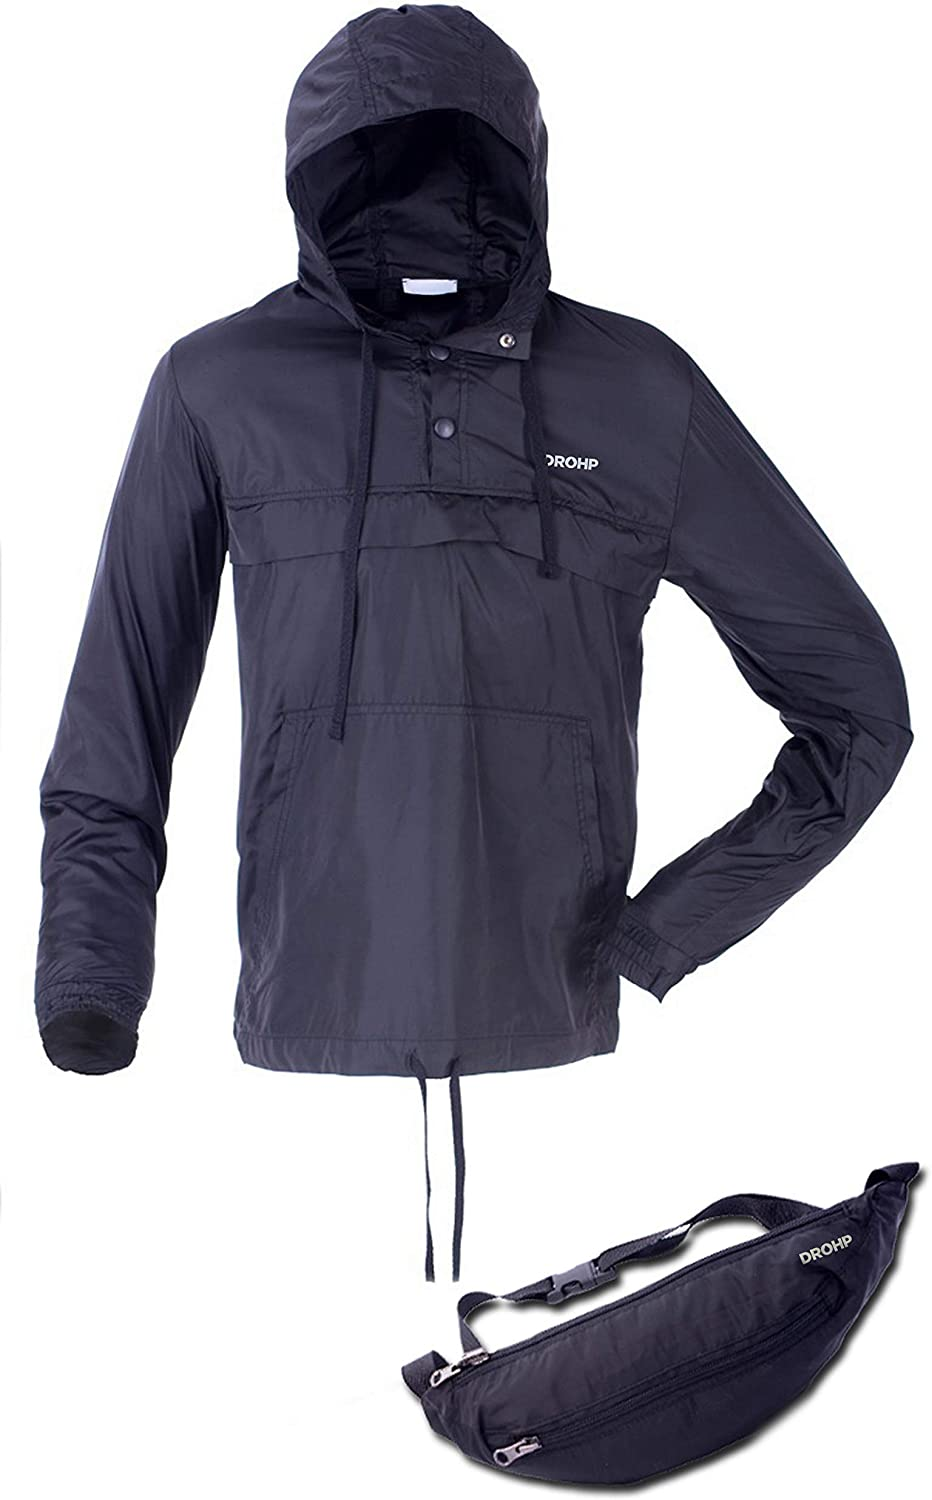 DROHP Anorak Jacket That Stows in A Fanny Pack …